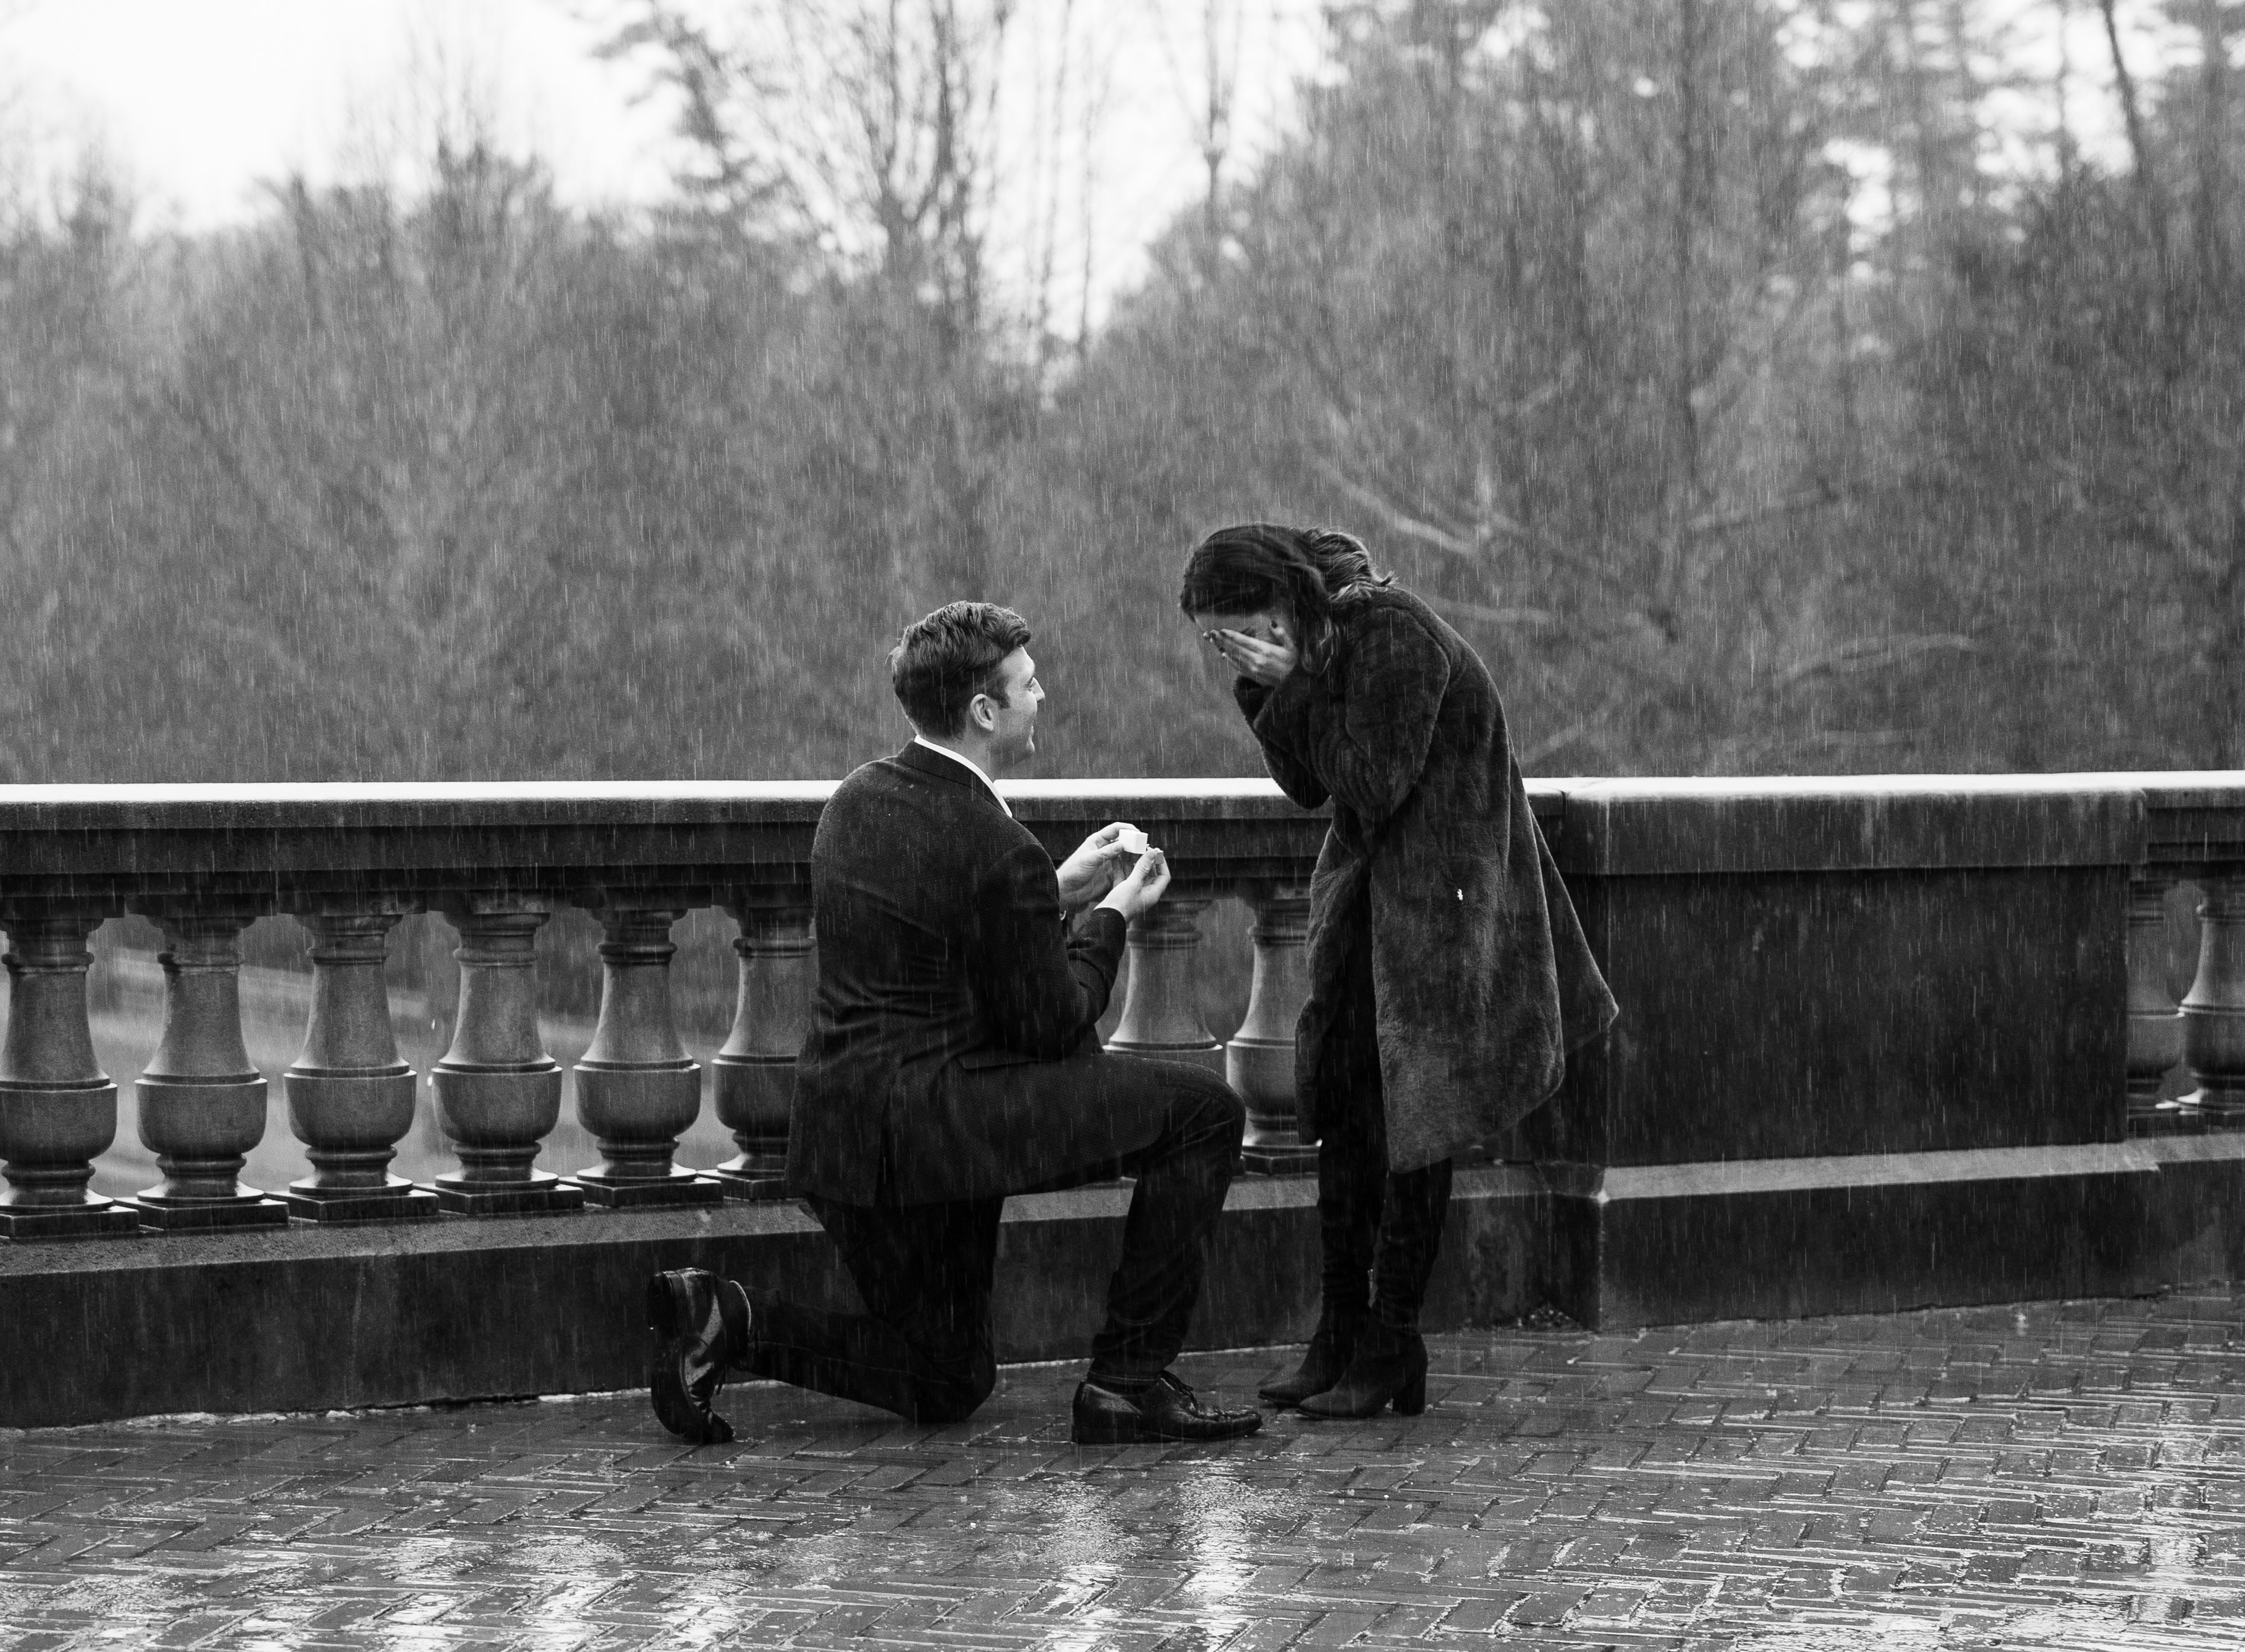 Biltmore proposals in the rain